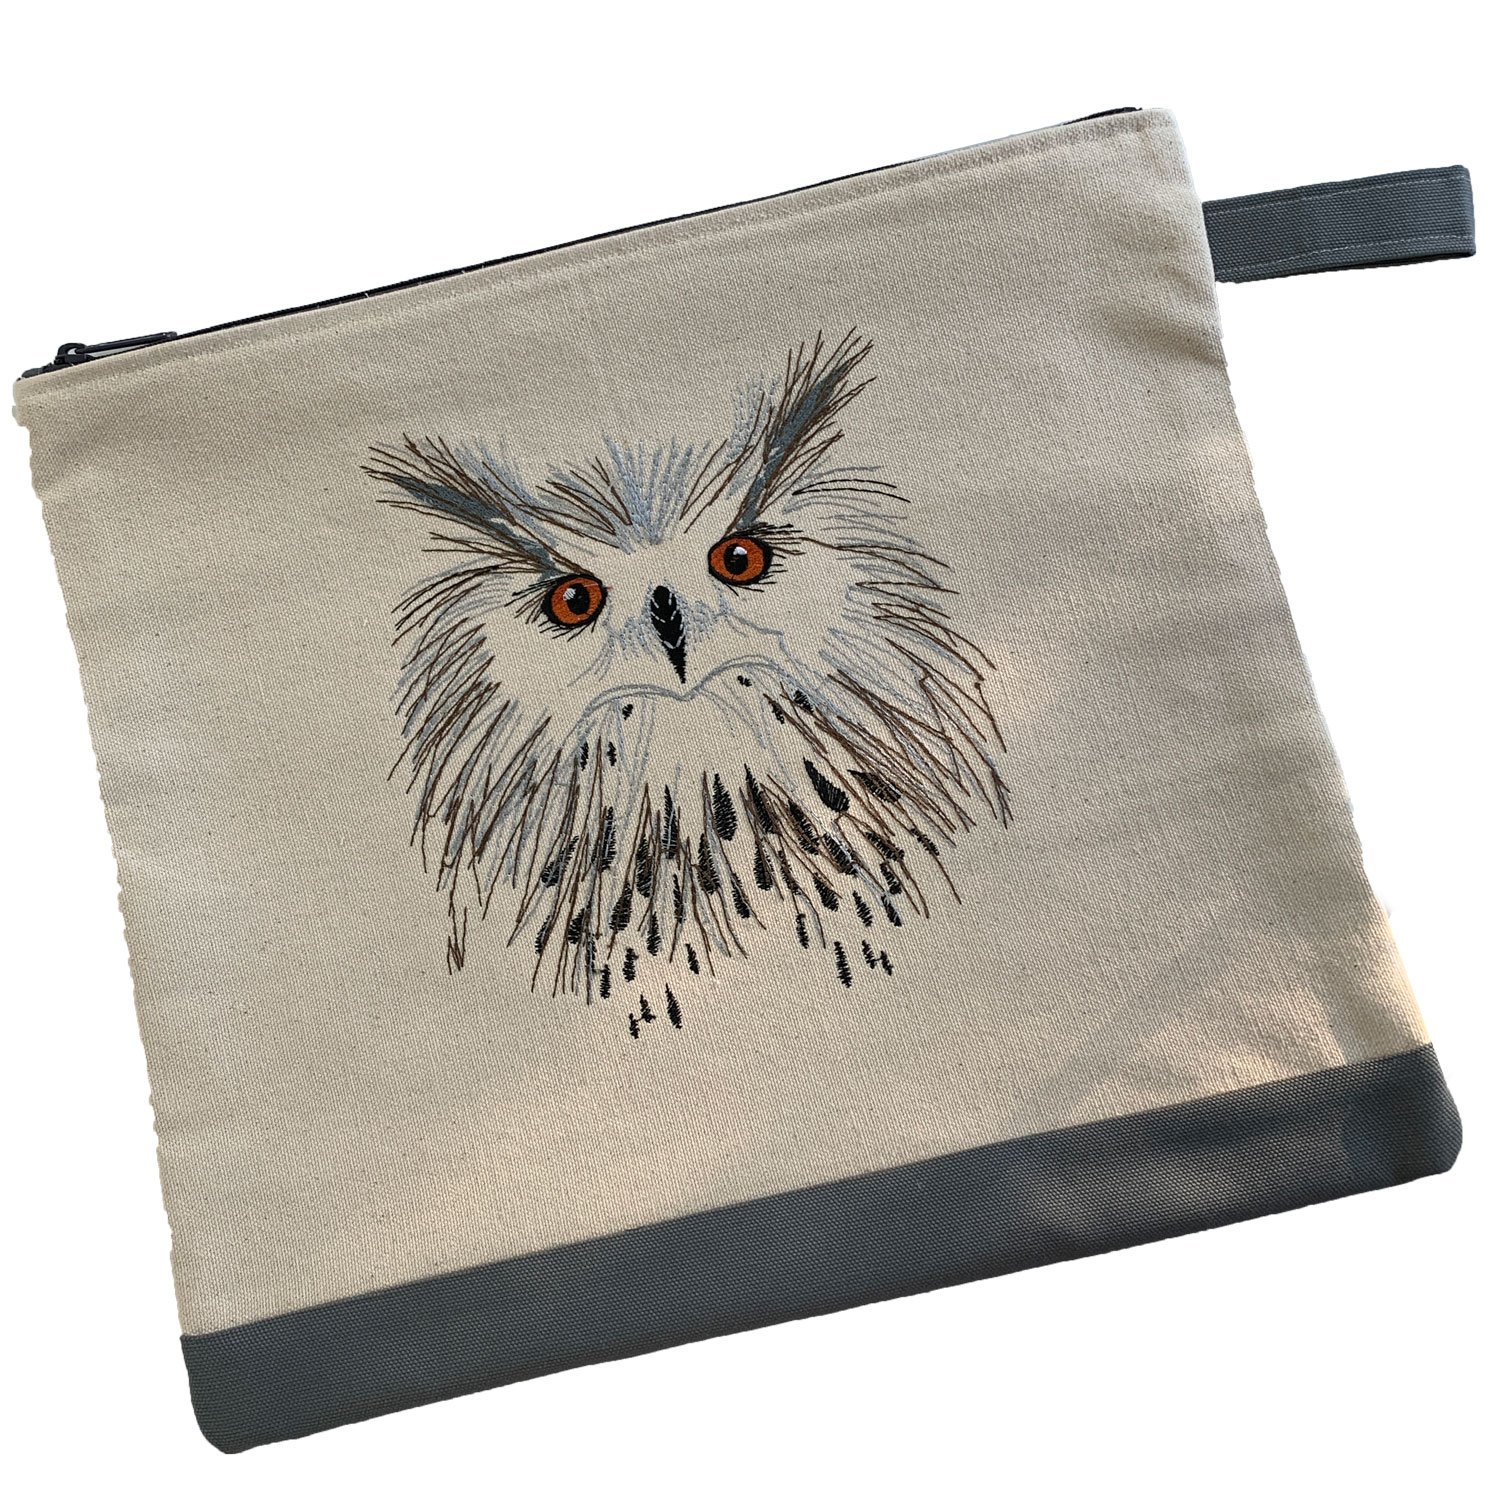 Embroidered Zip Pouch Handmade Owl